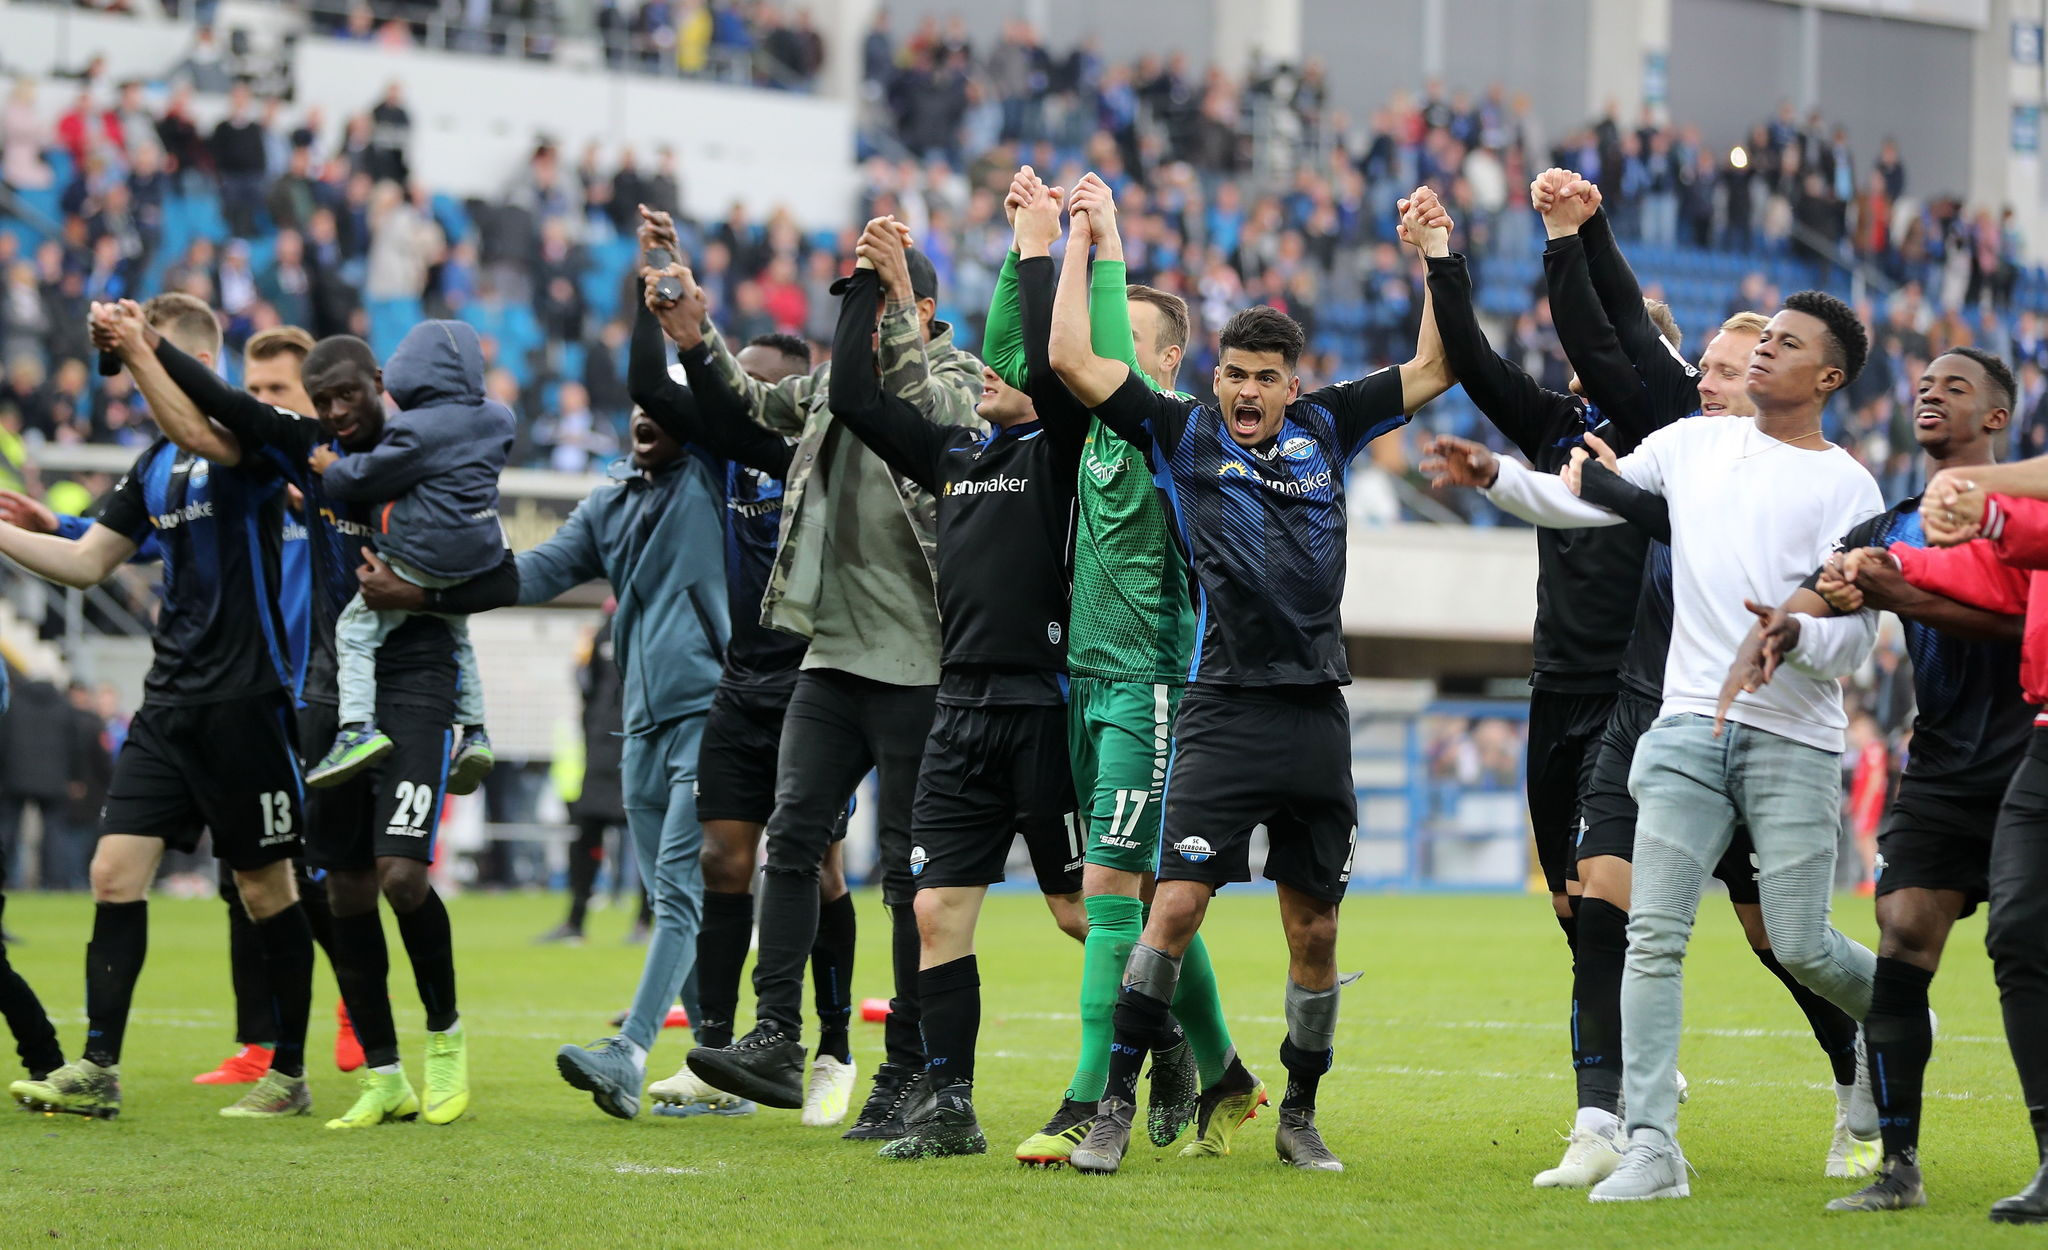 <HIT>Paderborn</HIT> (Germany), 12/05/2019.- <HIT>Paderborn</HIT>s team celebrates after winning the German 2. Bundesliga soccer match between SC <HIT>Paderborn</HIT> and Hamburger SV in <HIT>Paderborn</HIT>, Germany, 12 May 2019. (Alemania, Hamburgo) EFE/EPA/FRIEDEMANN VOGEL CONDITIONS - ATTENTION: The DFL regulations prohibit any use of photographs as image sequences and/or quasi-video